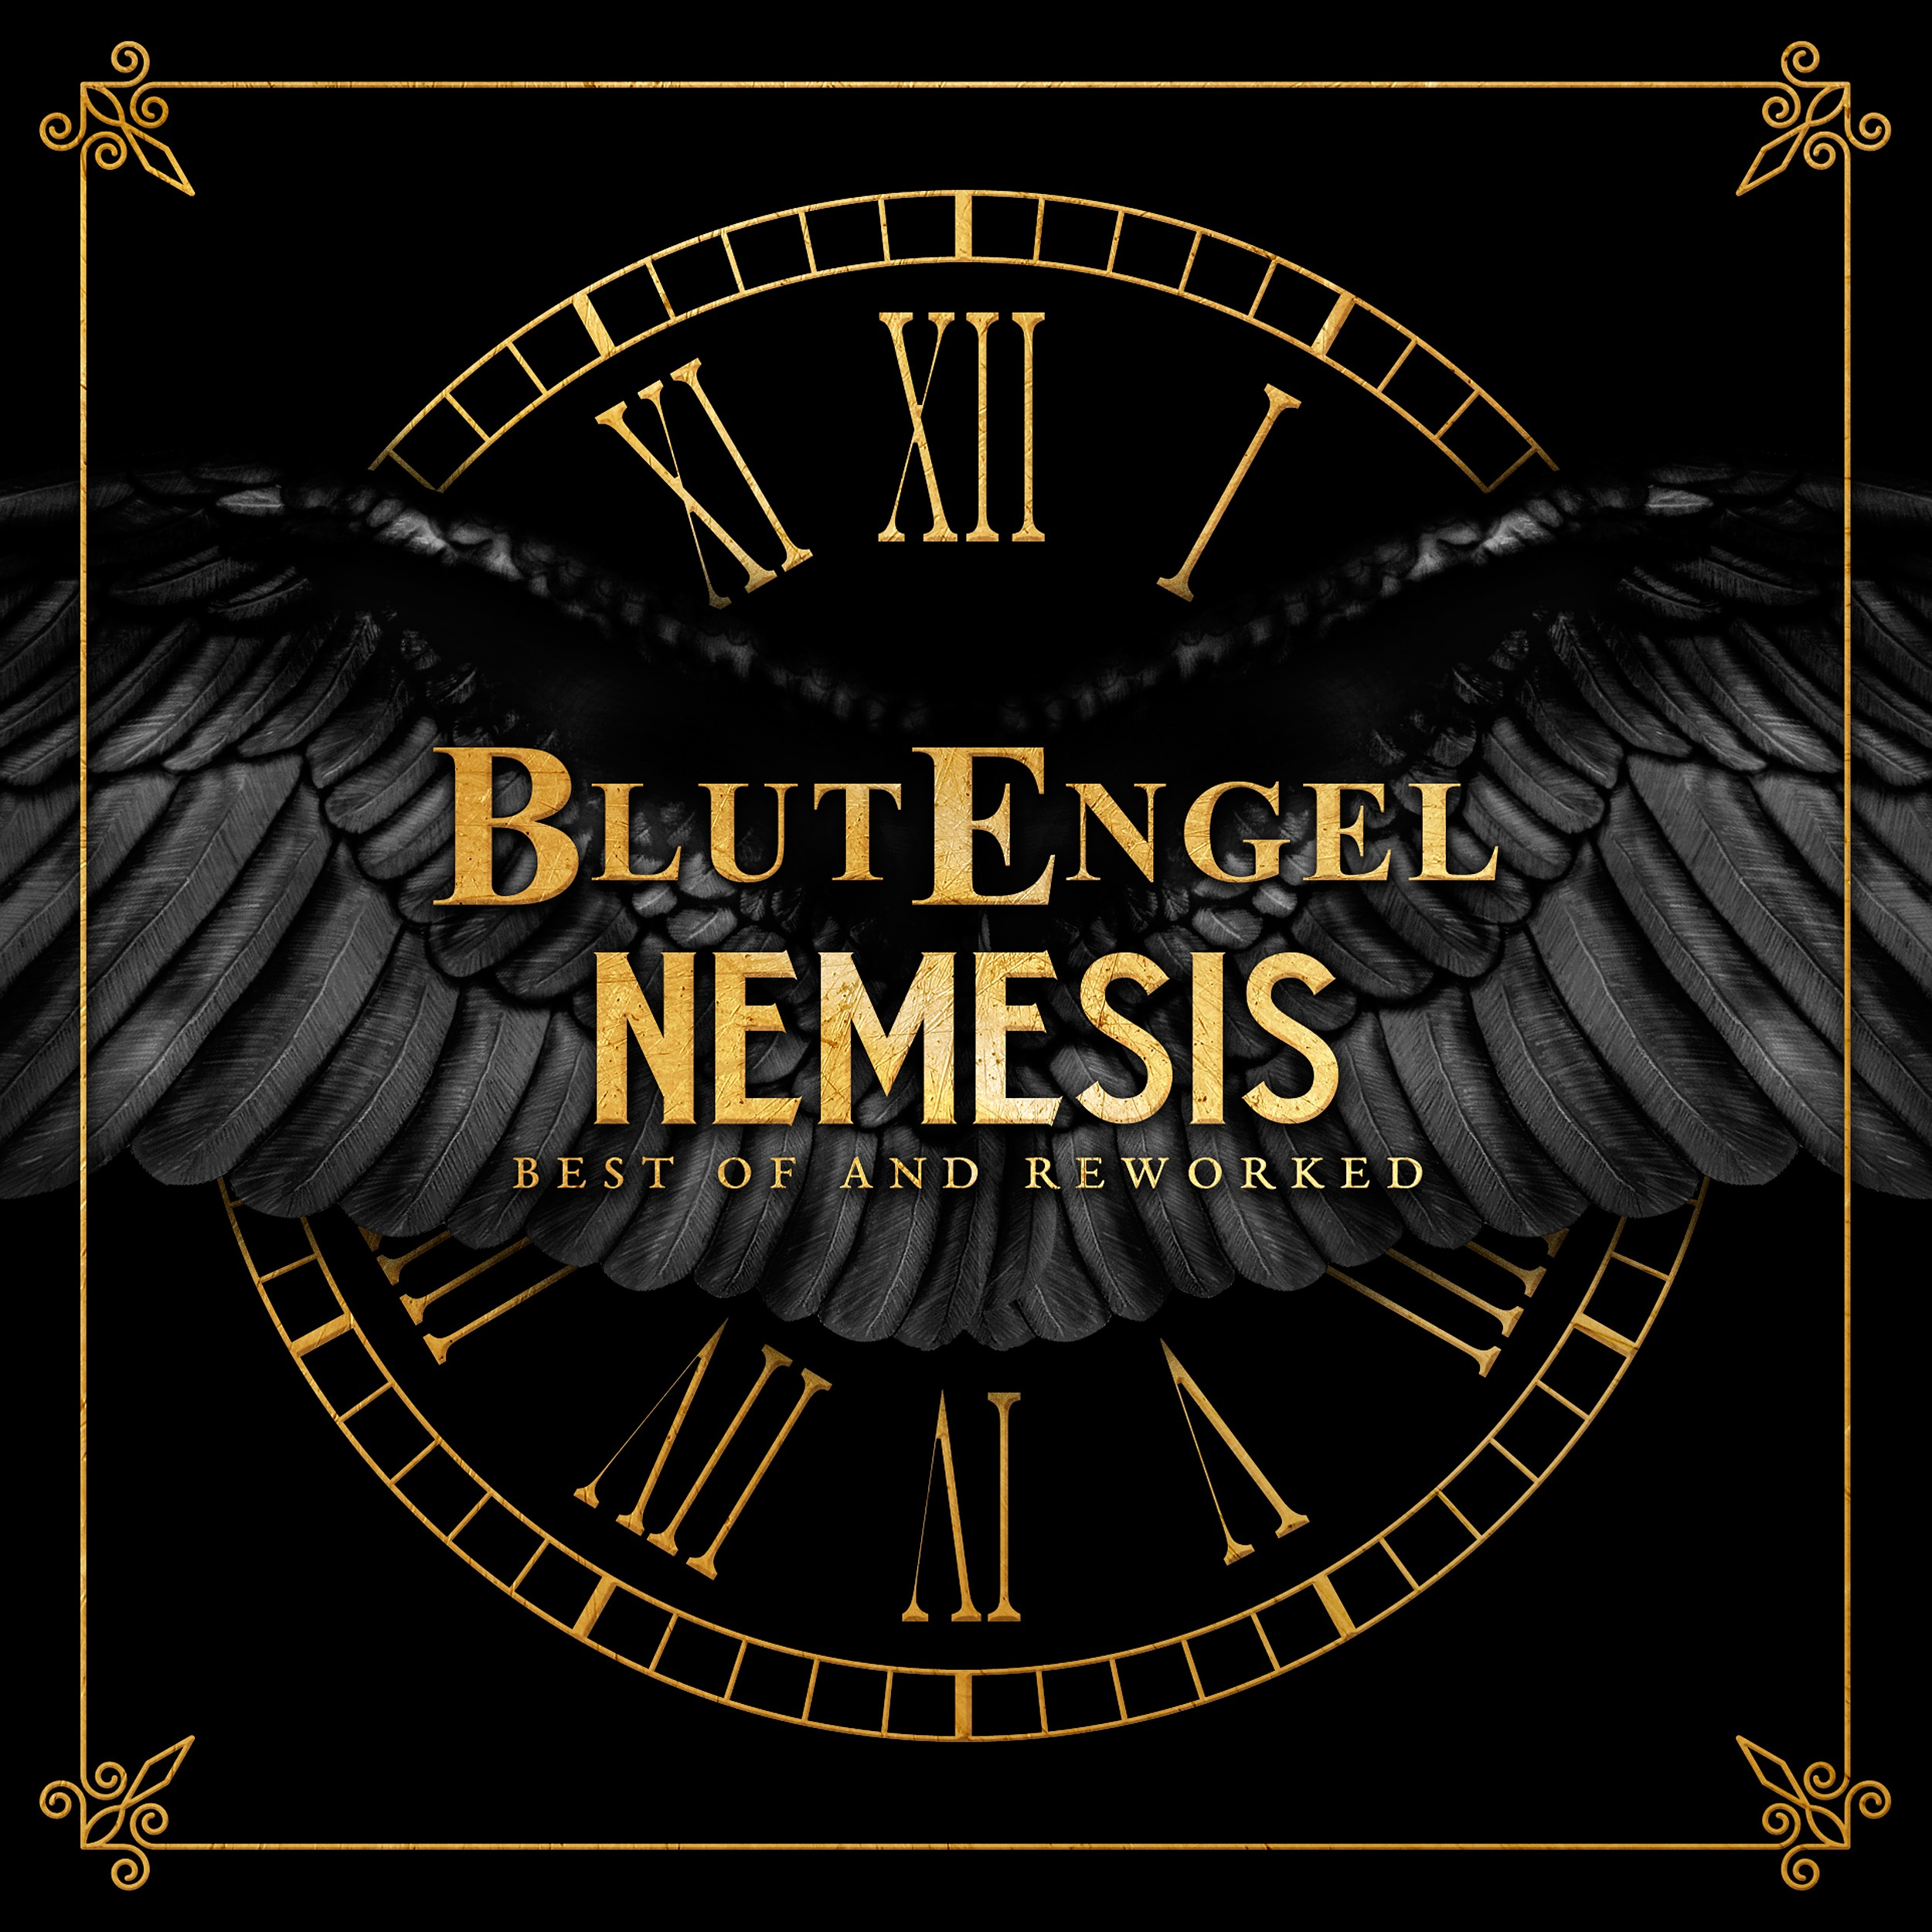 Blutengel - Nemesis: The Best Of & Reworked - 2CD - Deluxe Edition